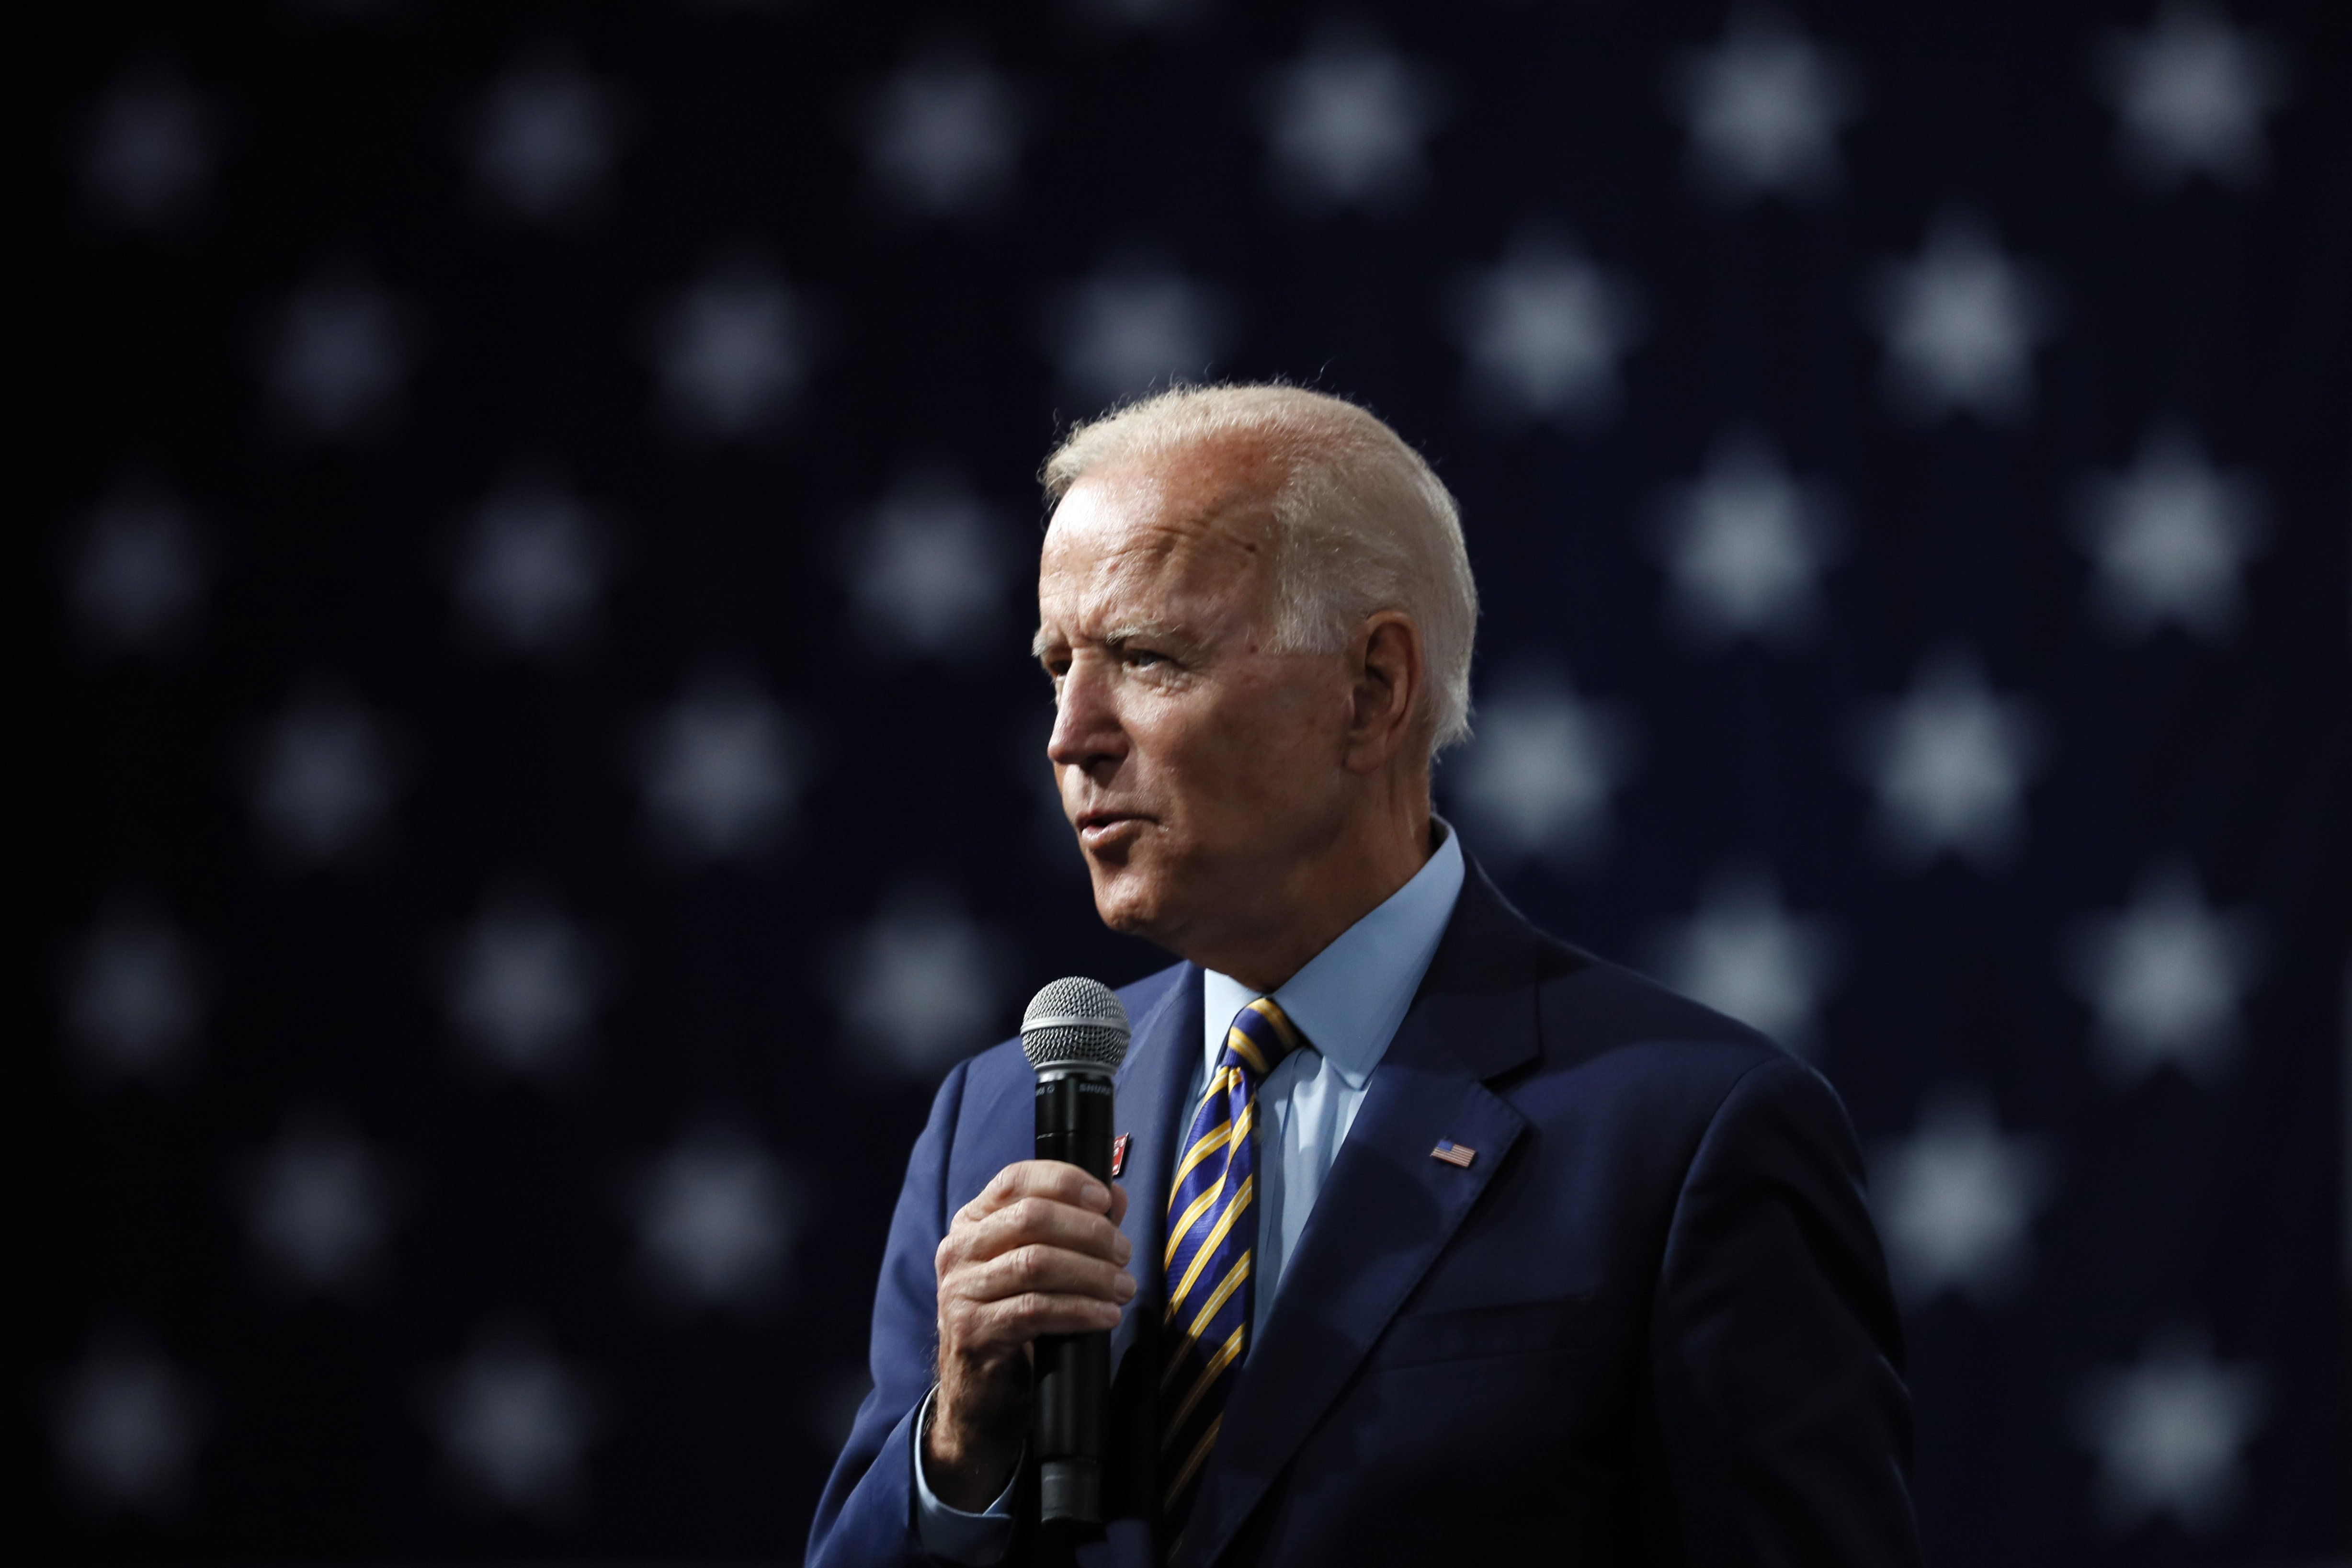 Recalling deaths of MLK and Robert Kennedy, Biden poses hypothetical question about an Obama assassination